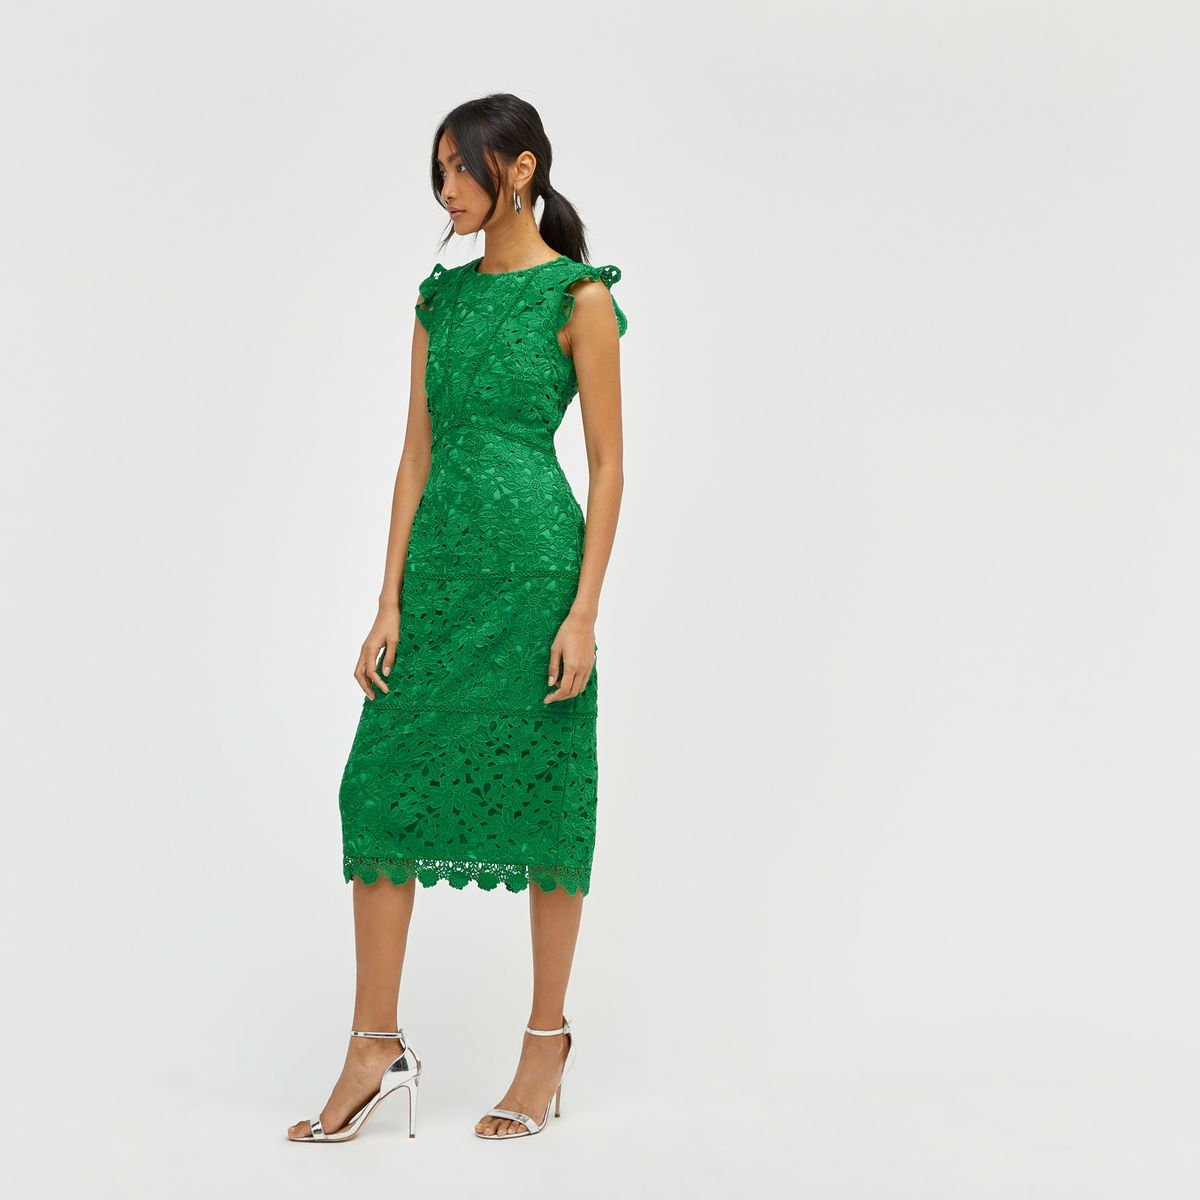 Warehouse tiered lace dress yellow  Warehouse SCALLOP HEM LACE MIDI DRESS Bright Green   Bridesmaid